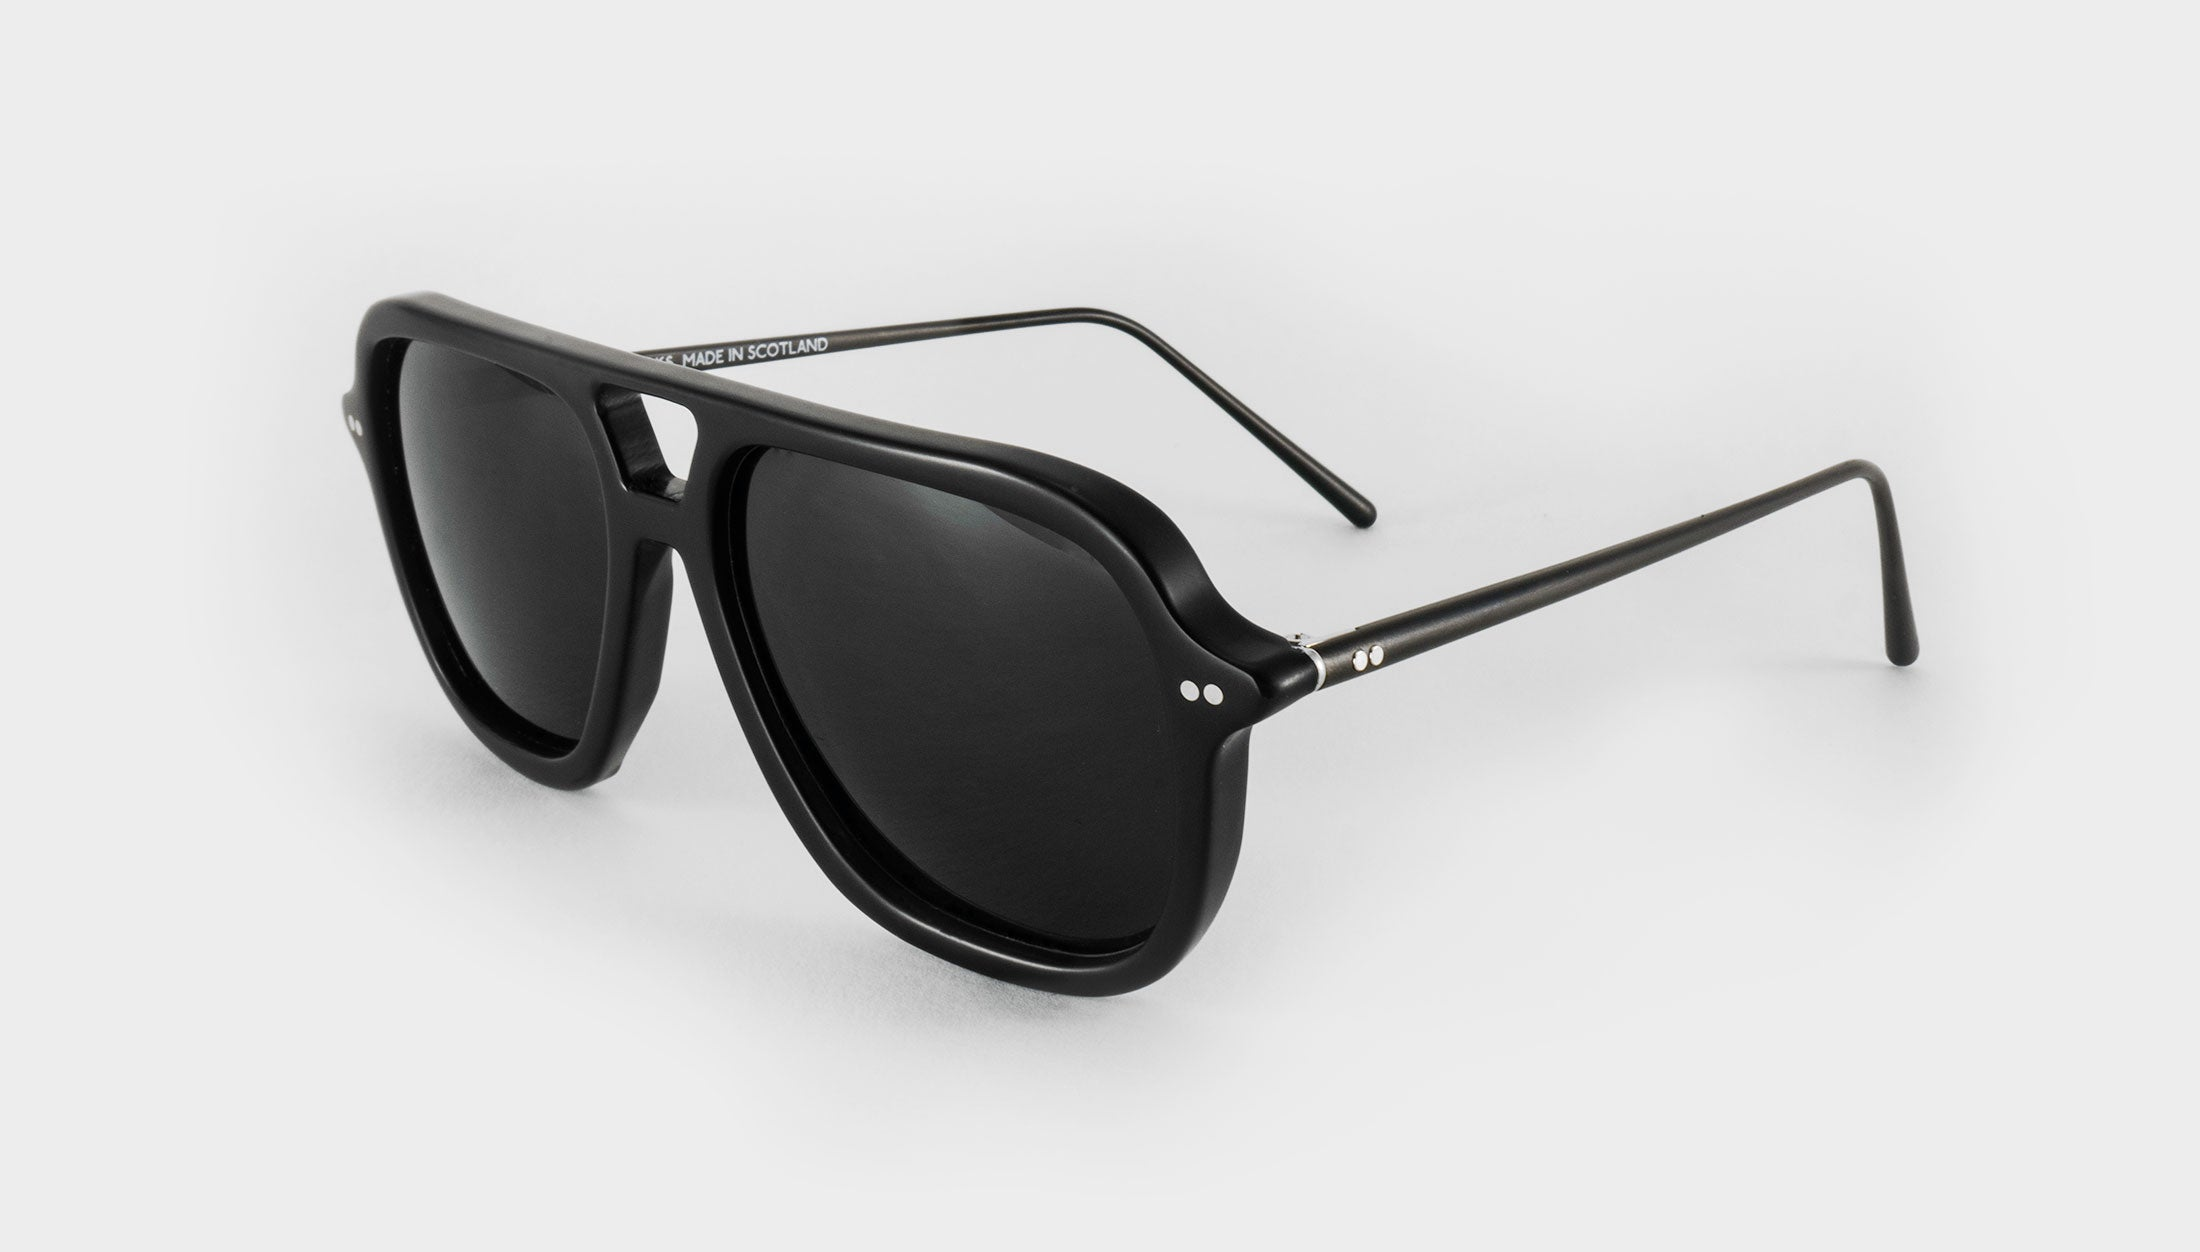 Polarised black square aviator sunglasses for women side view